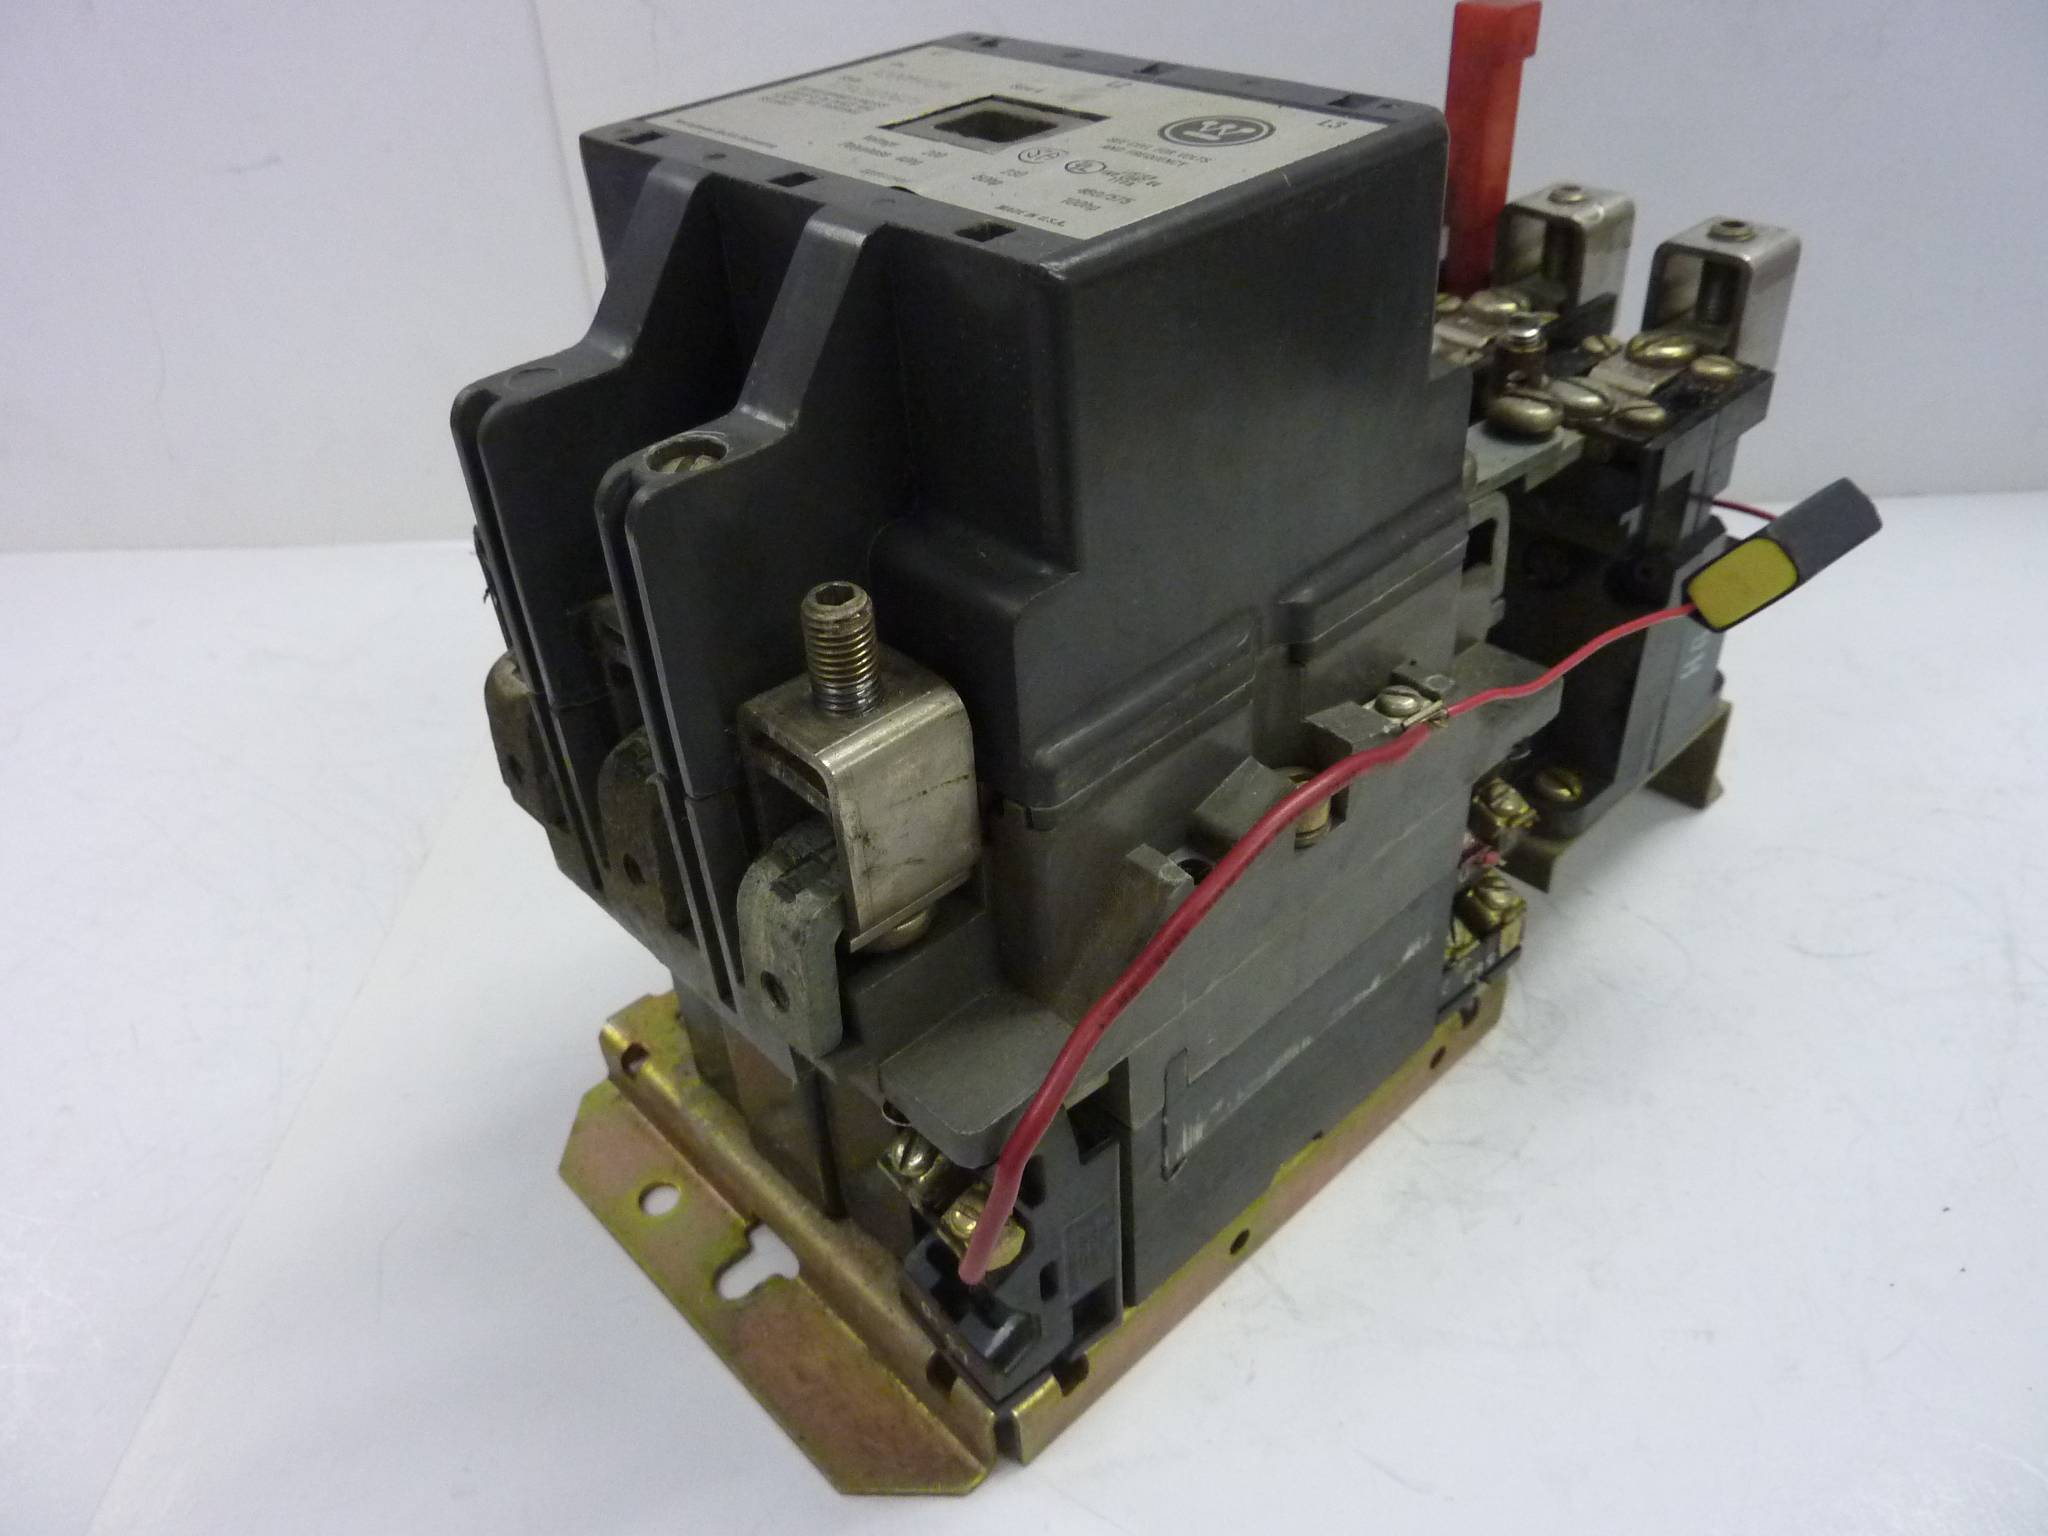 Westinghouse motor starter size 4 a200m4cac used 15387 ebay for Westinghouse motor starter parts